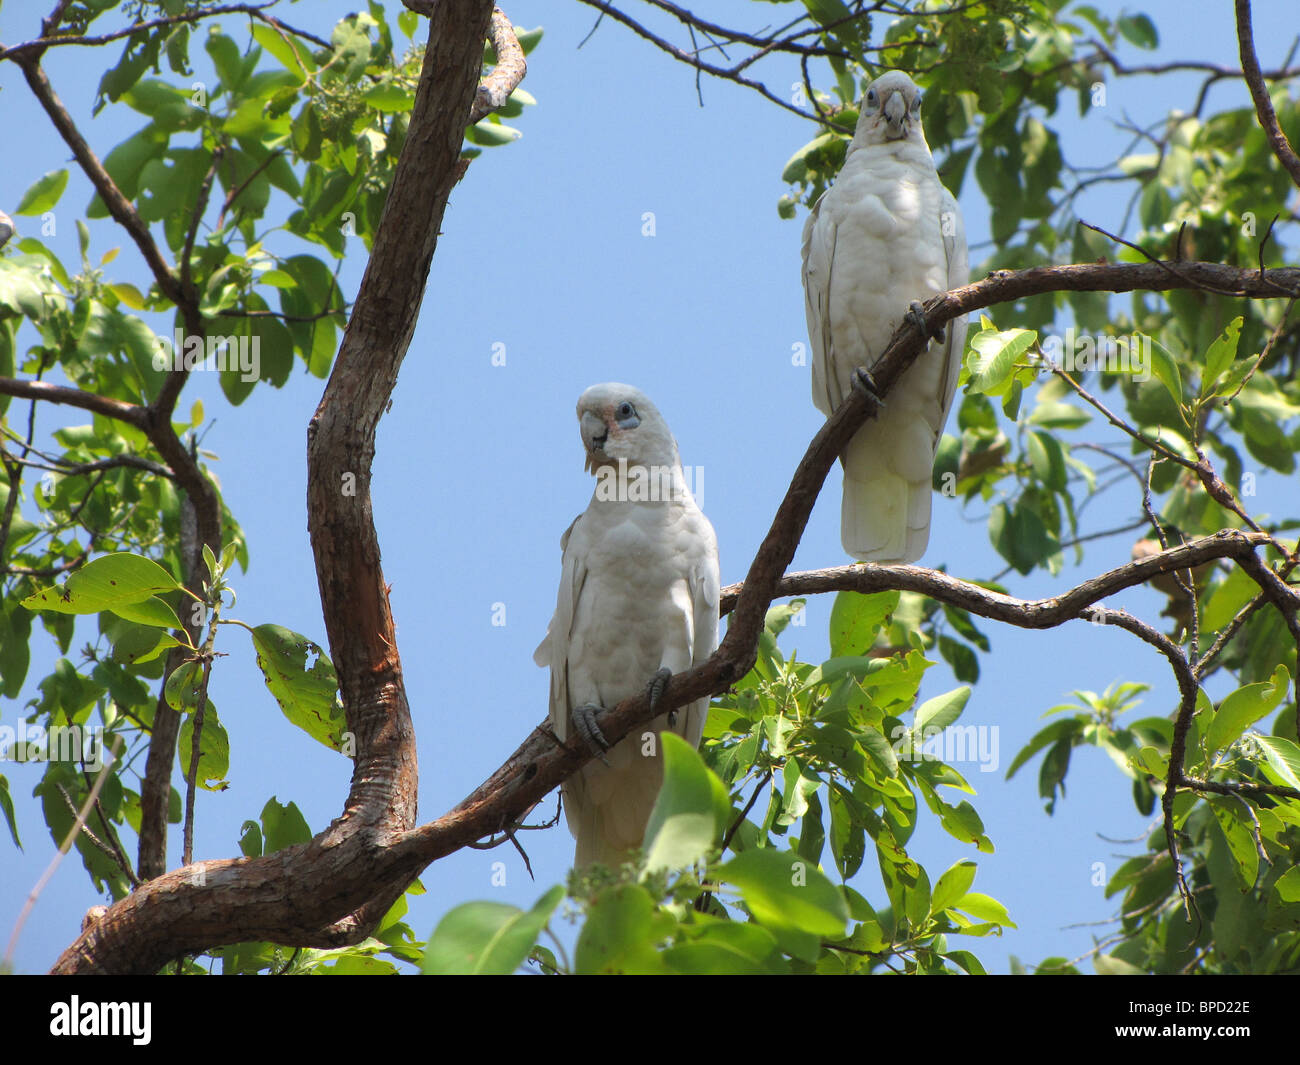 A pair of Little Corellas (Cacatua sanguinea) perched in a gum tree in Leaning Tree Lagoon Nature Park, Australia. - Stock Image